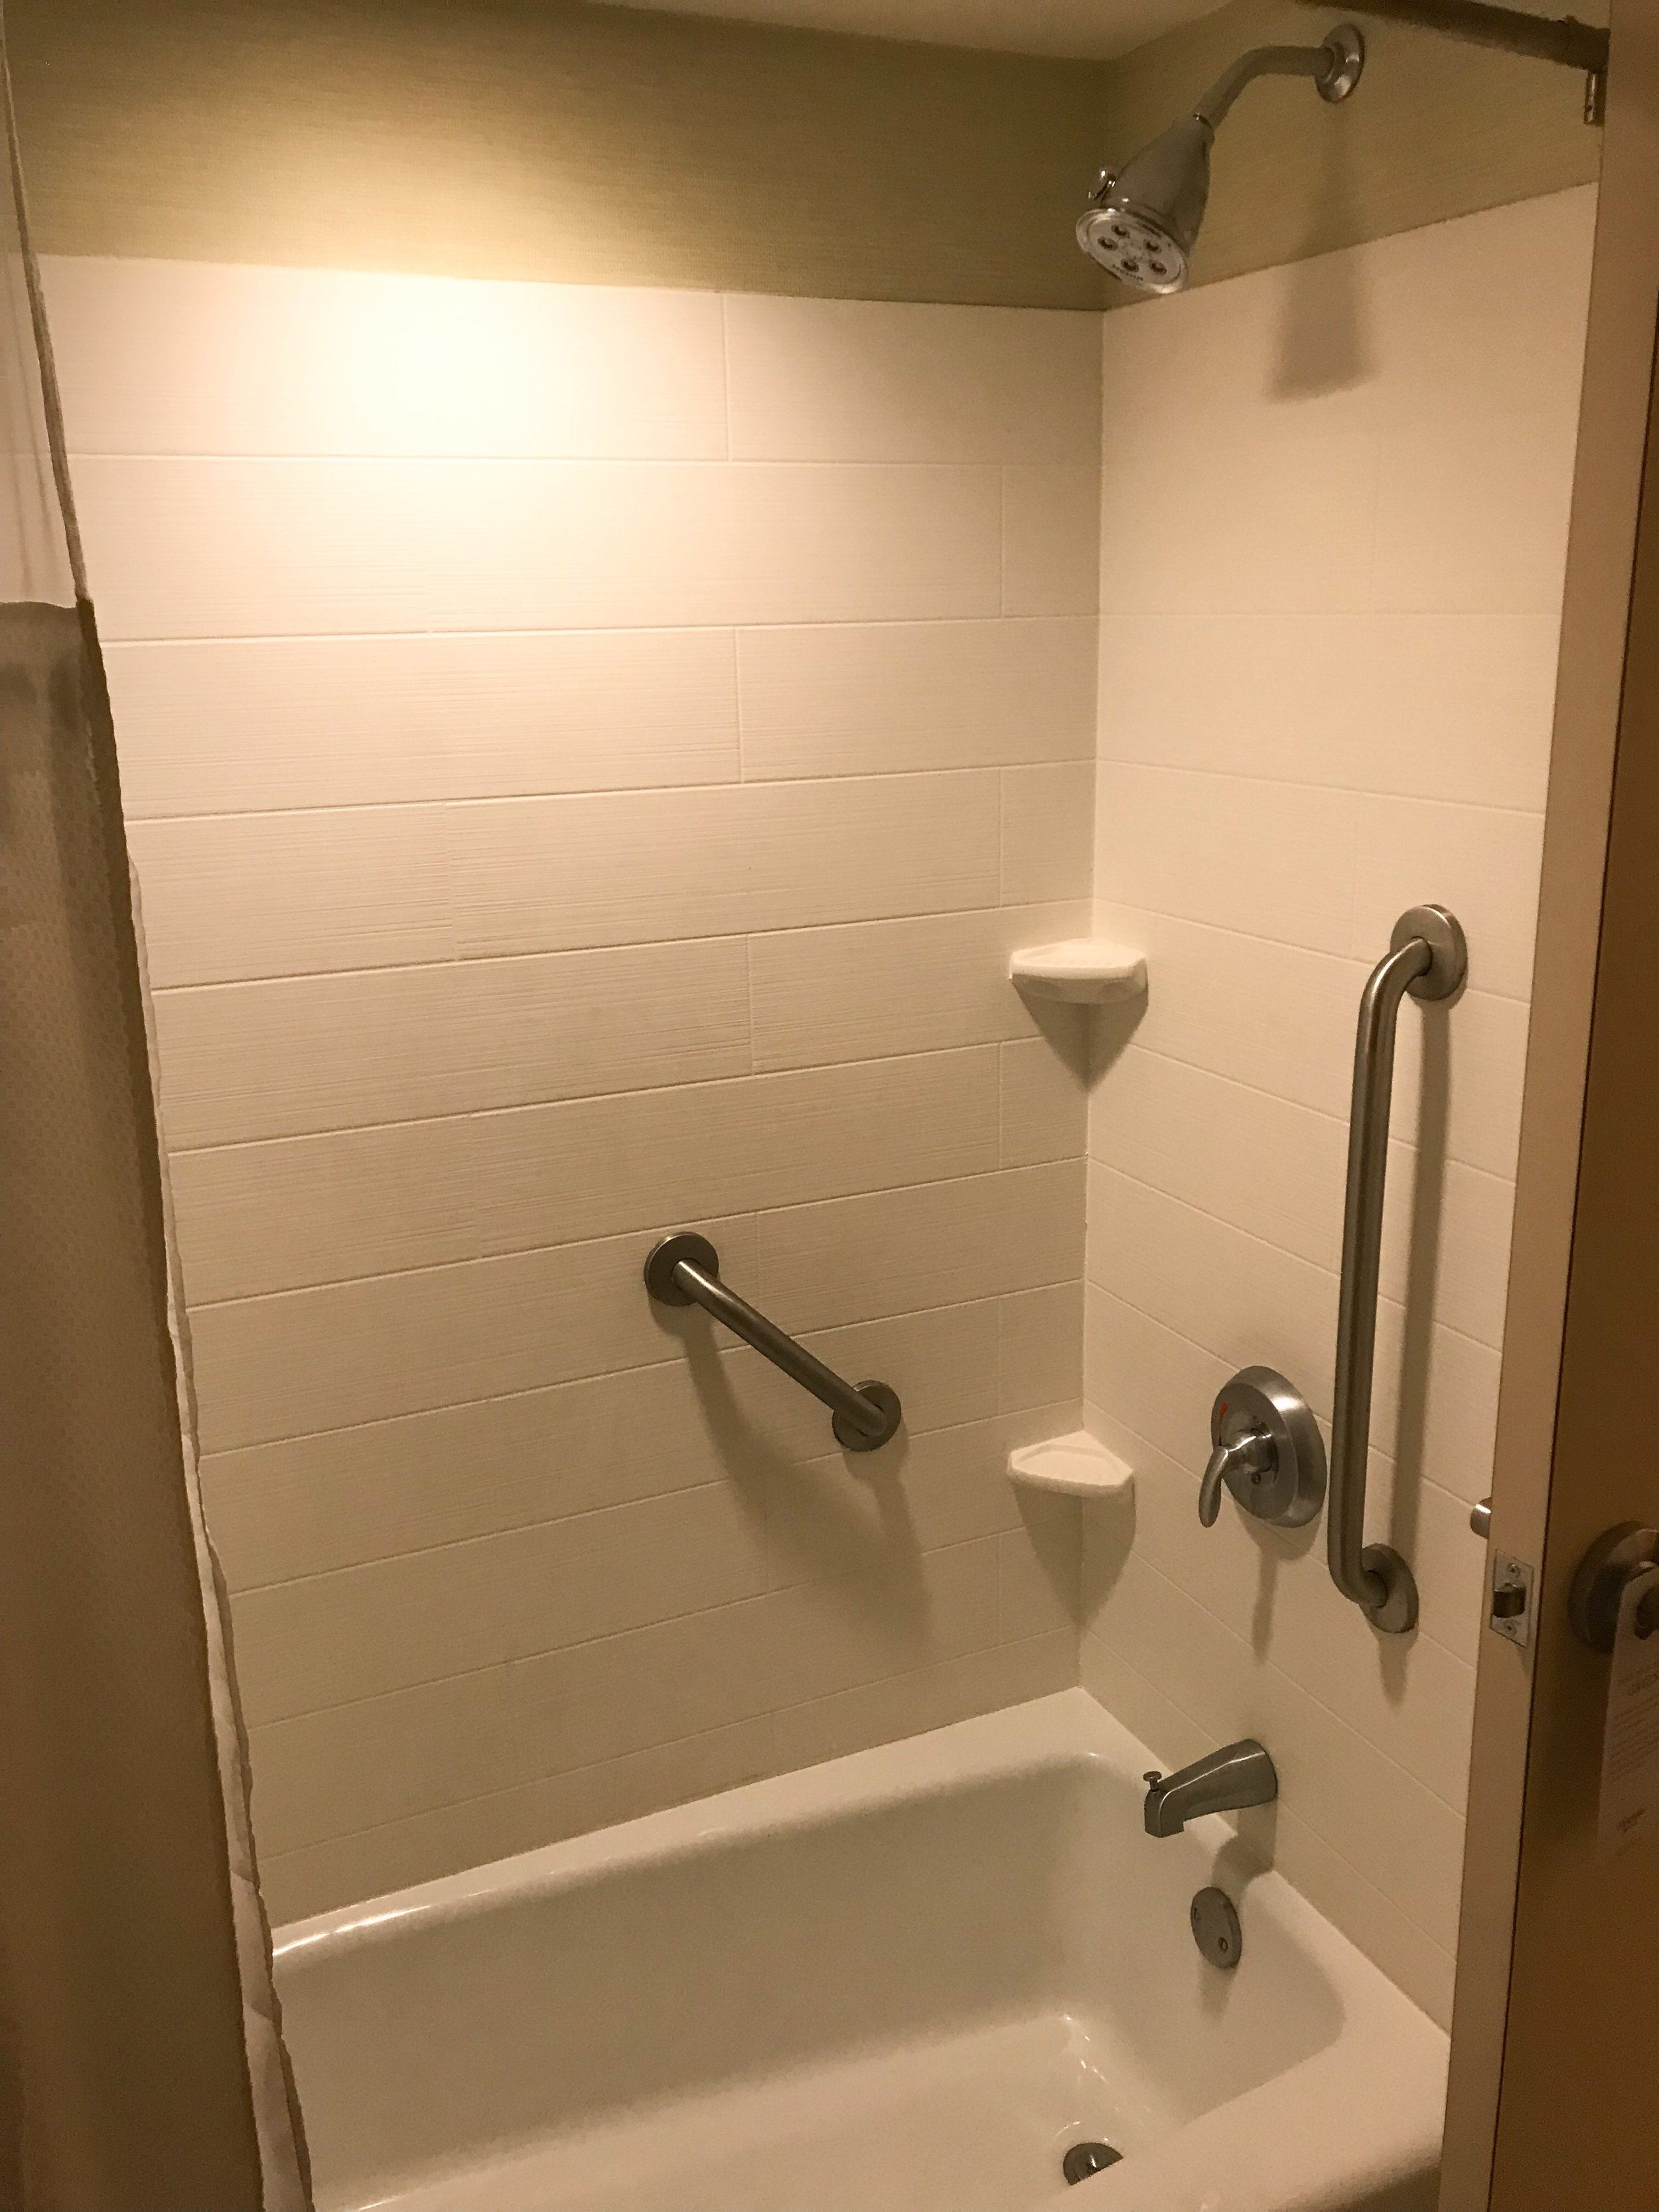 There was a bathtub/shower combination.